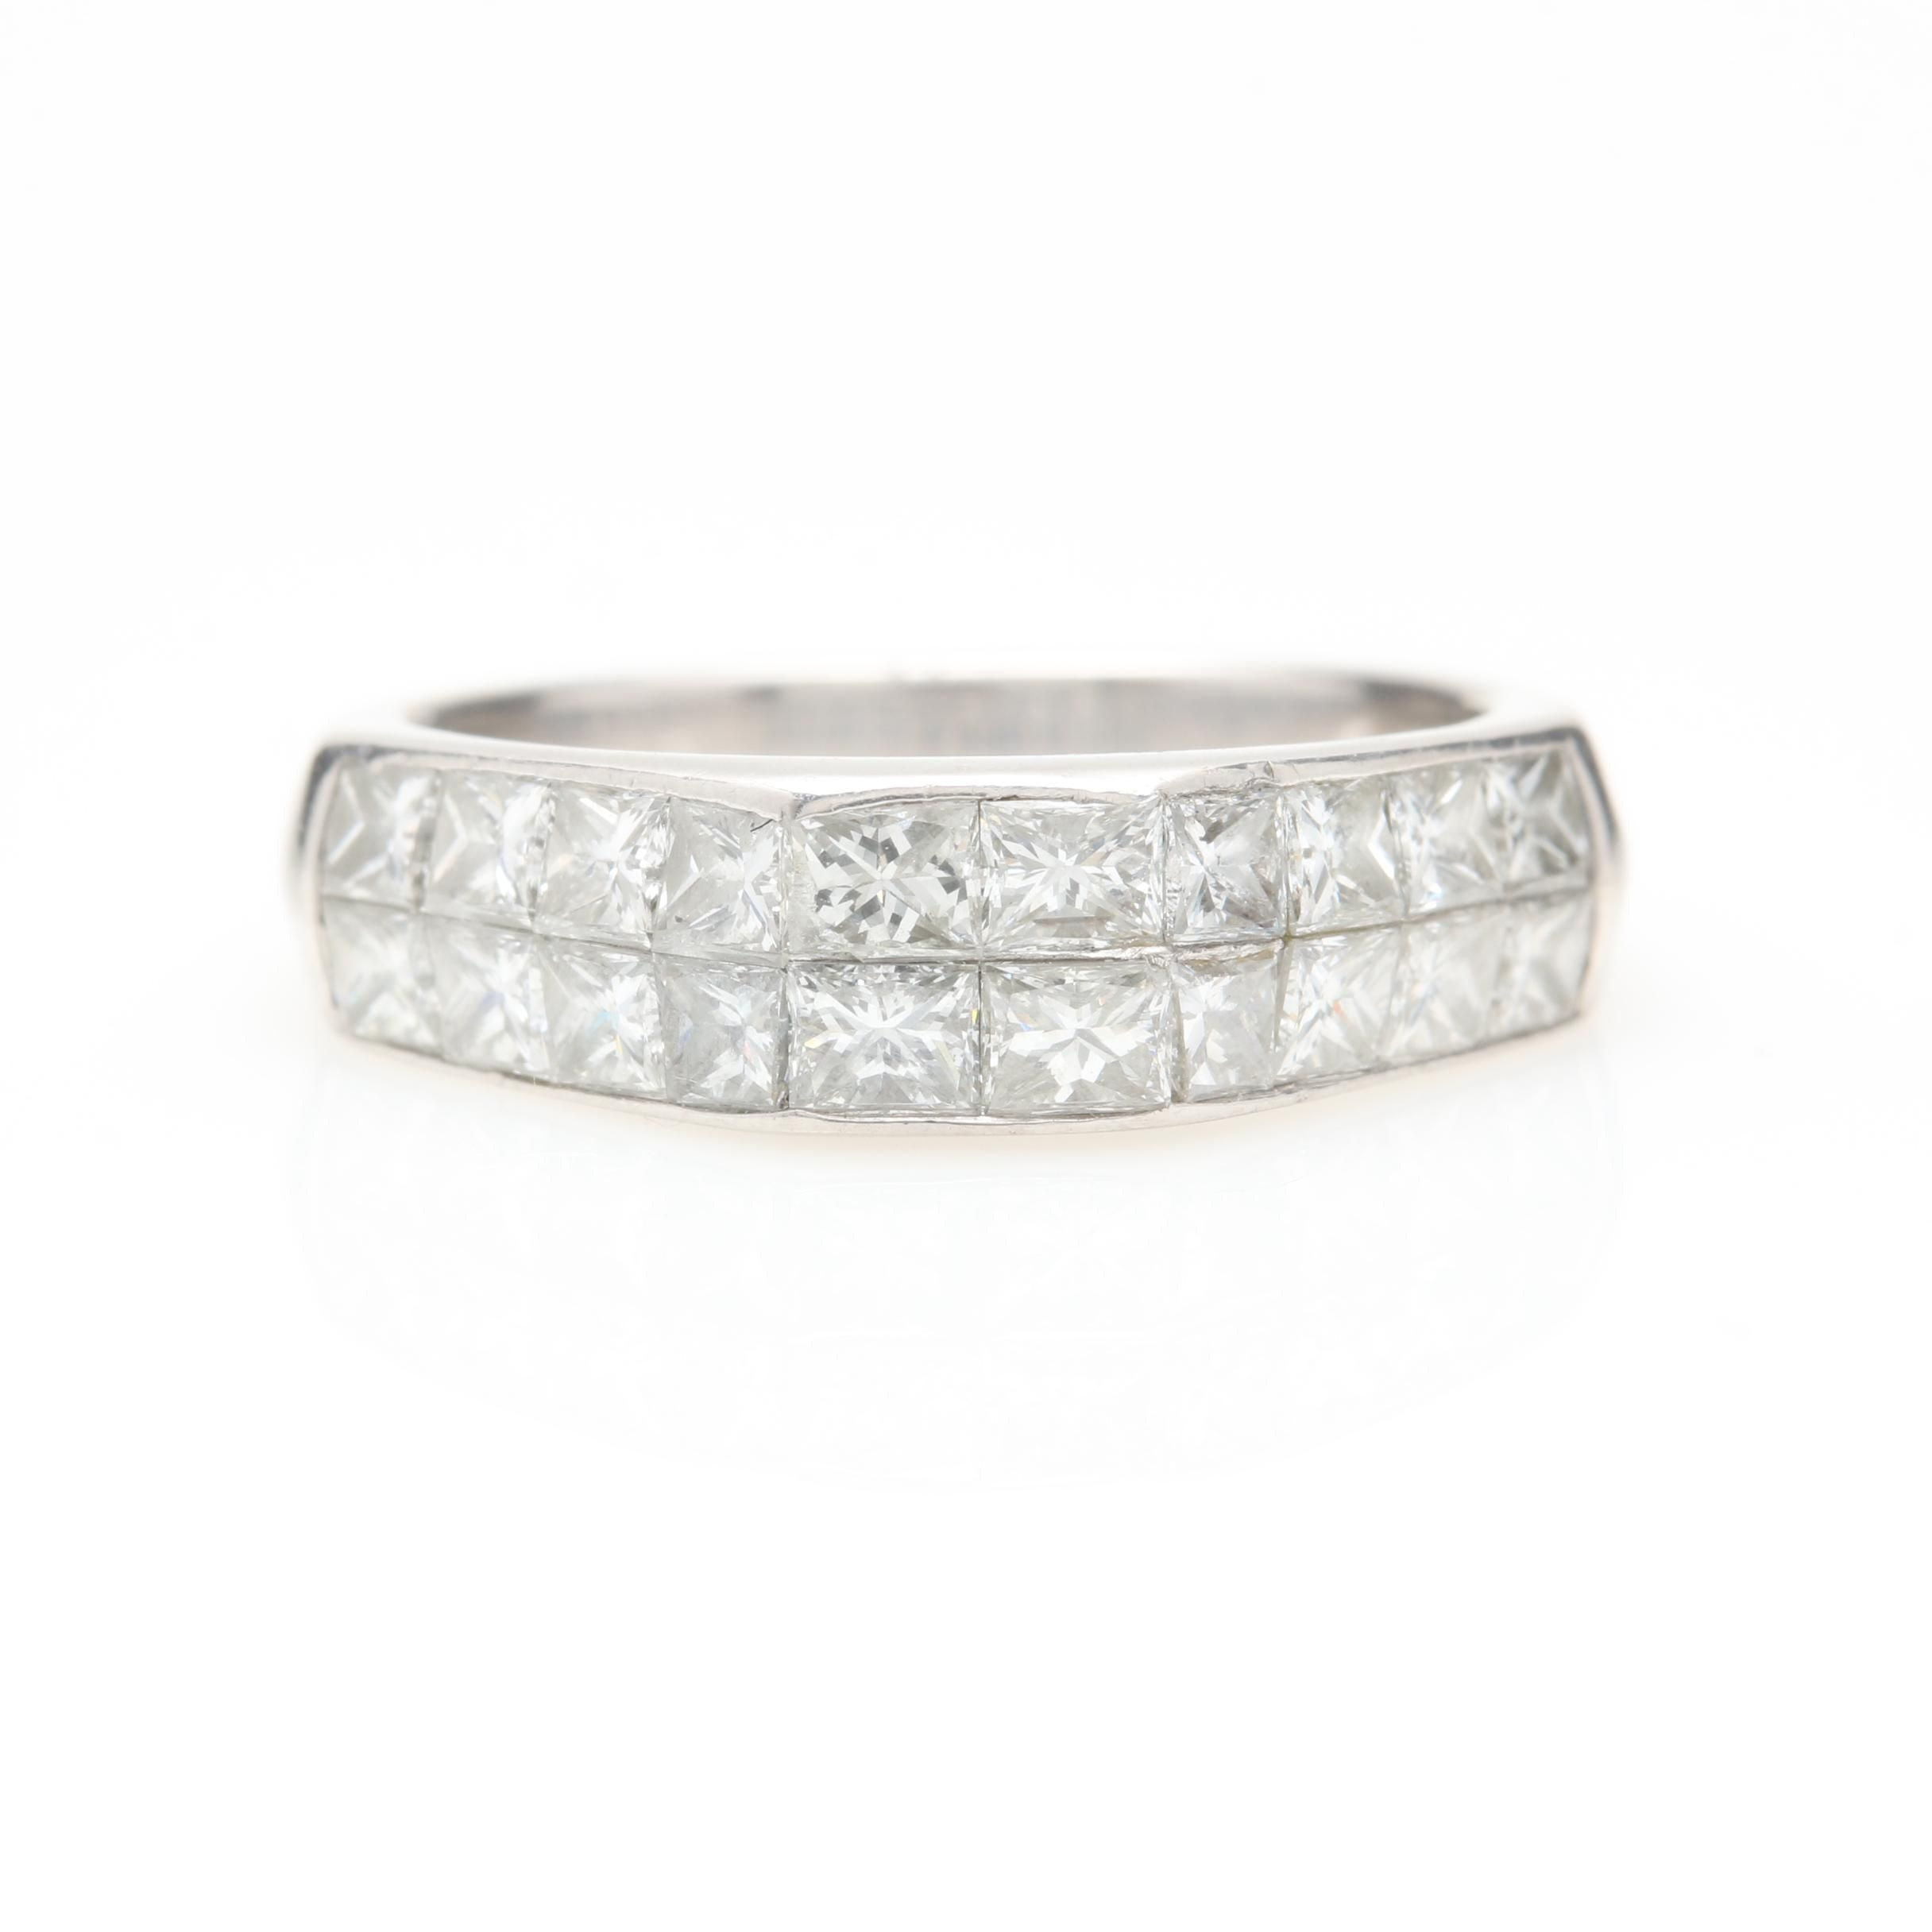 Platinum 1.52 CTW Diamond Ring